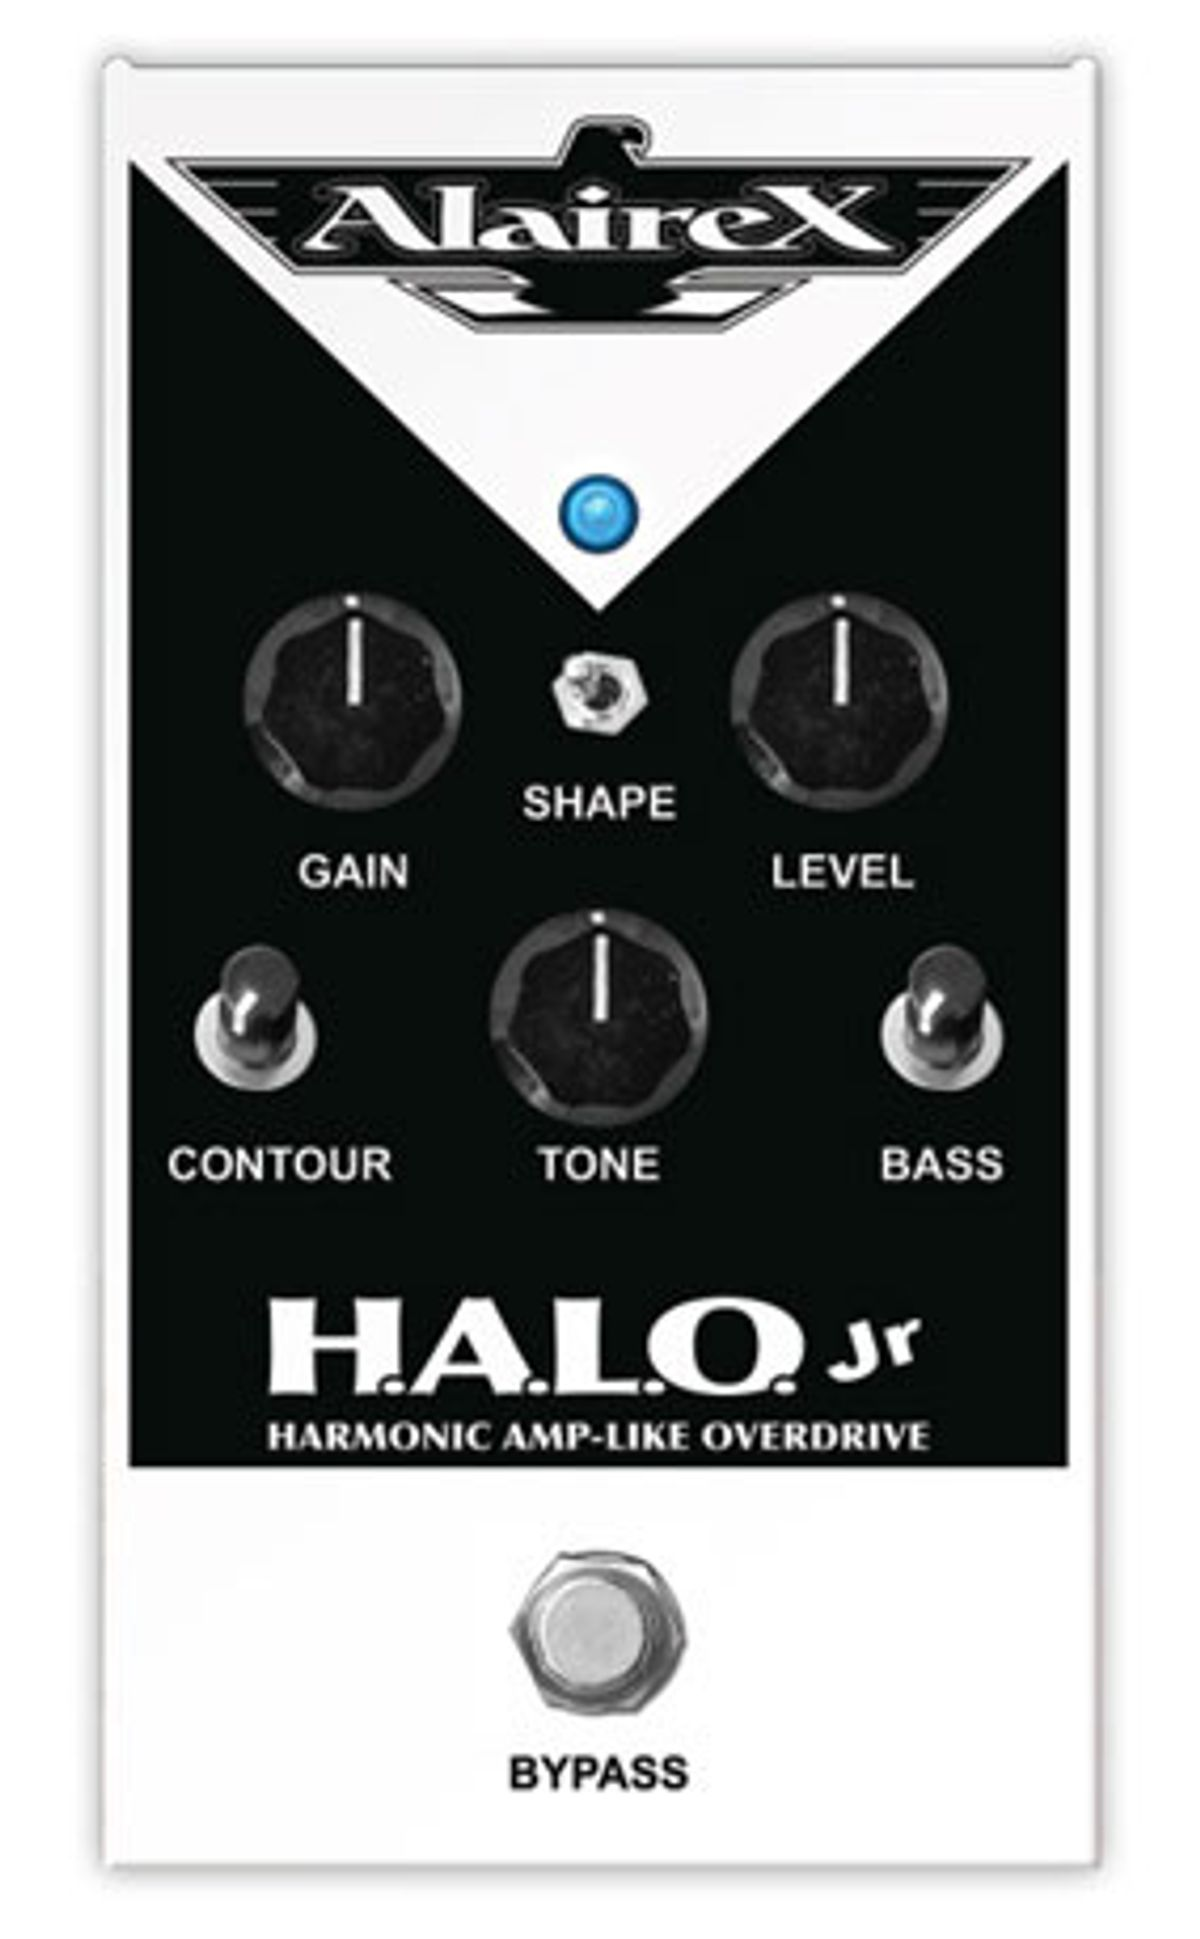 Alairex Releases the H.A.L.O. Jr. Overdrive Pedal